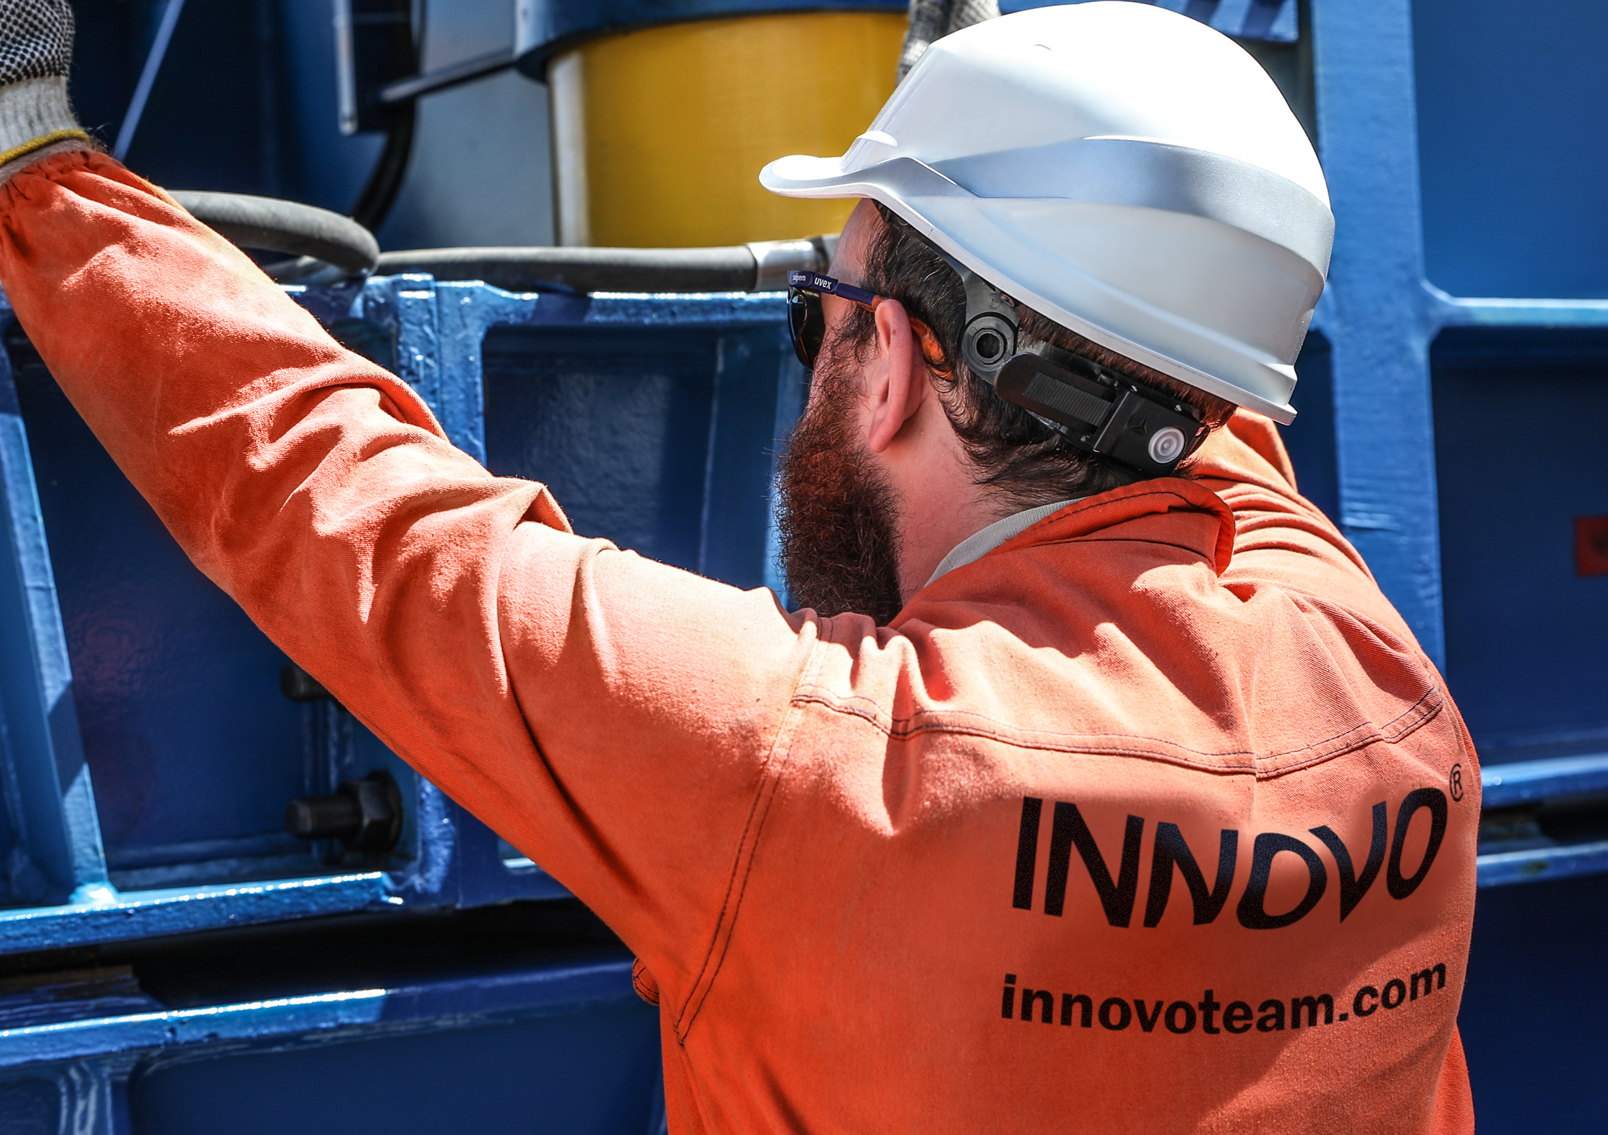 Innovo provide big win for their client